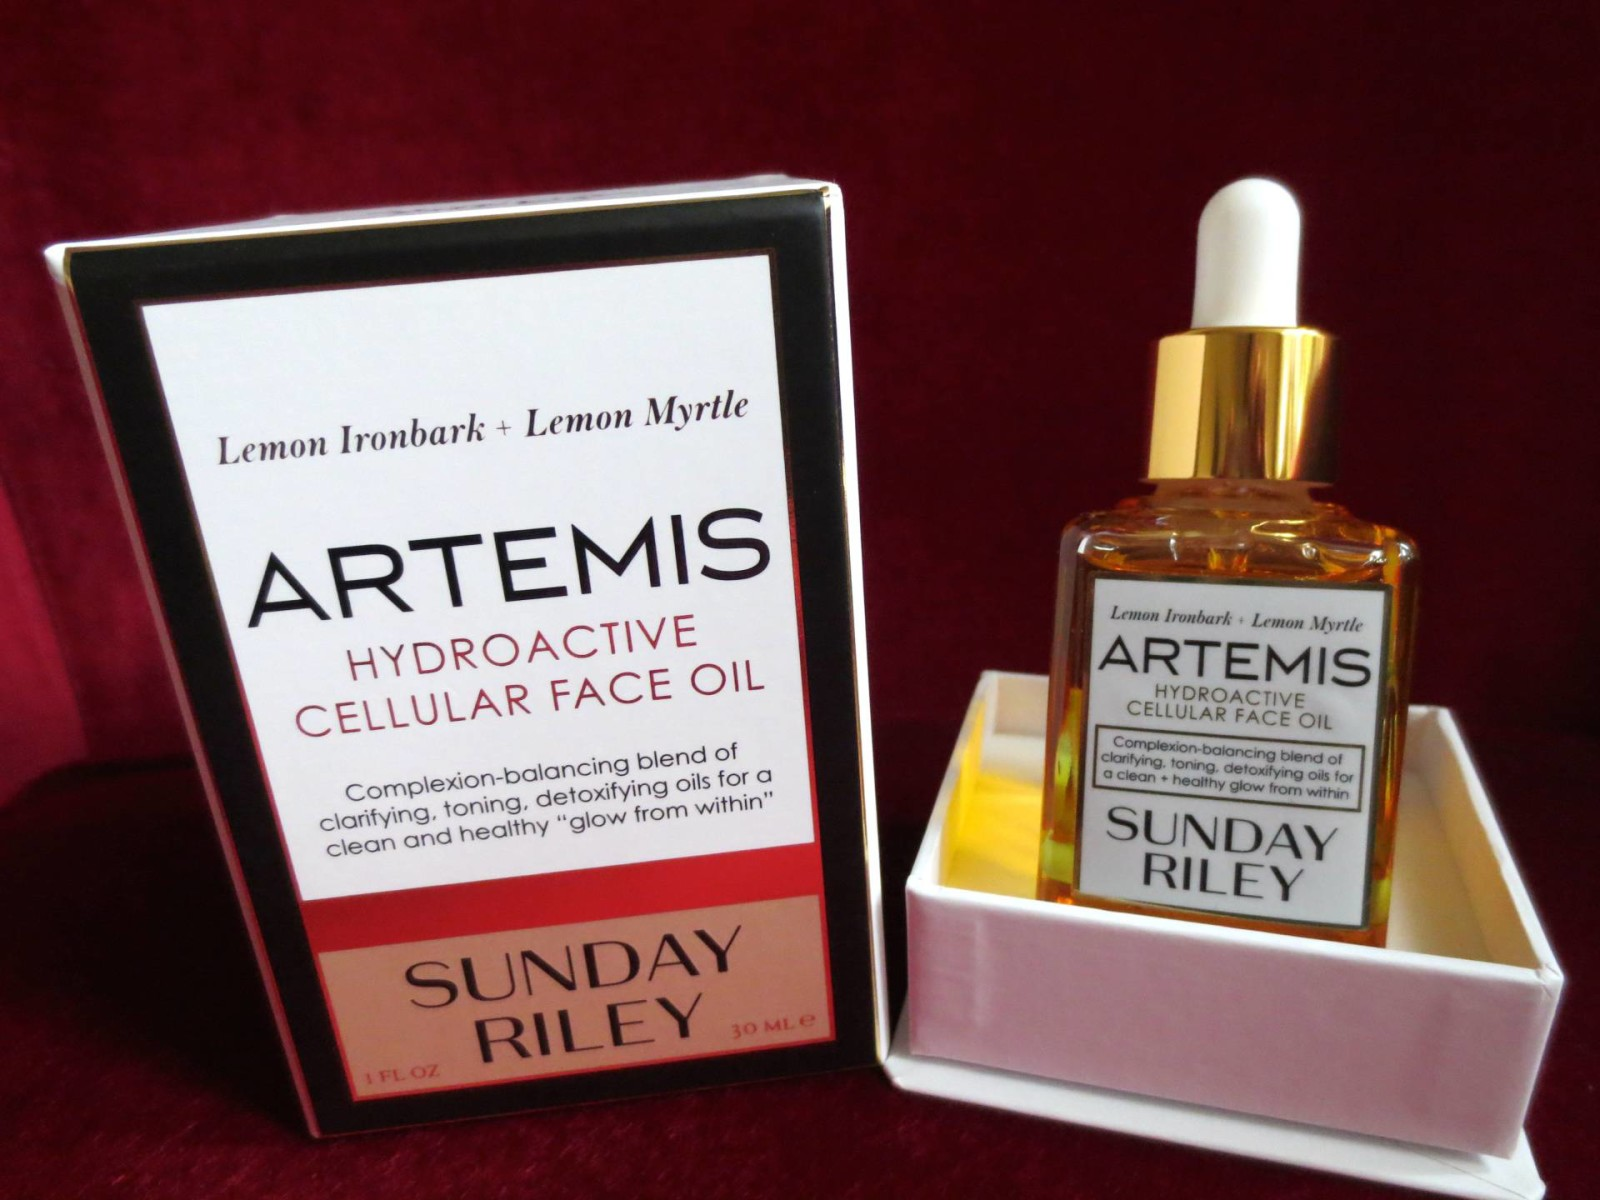 A complexion-balancing face oil from Sunday Riley – Artemis hydroactive cellular face oil